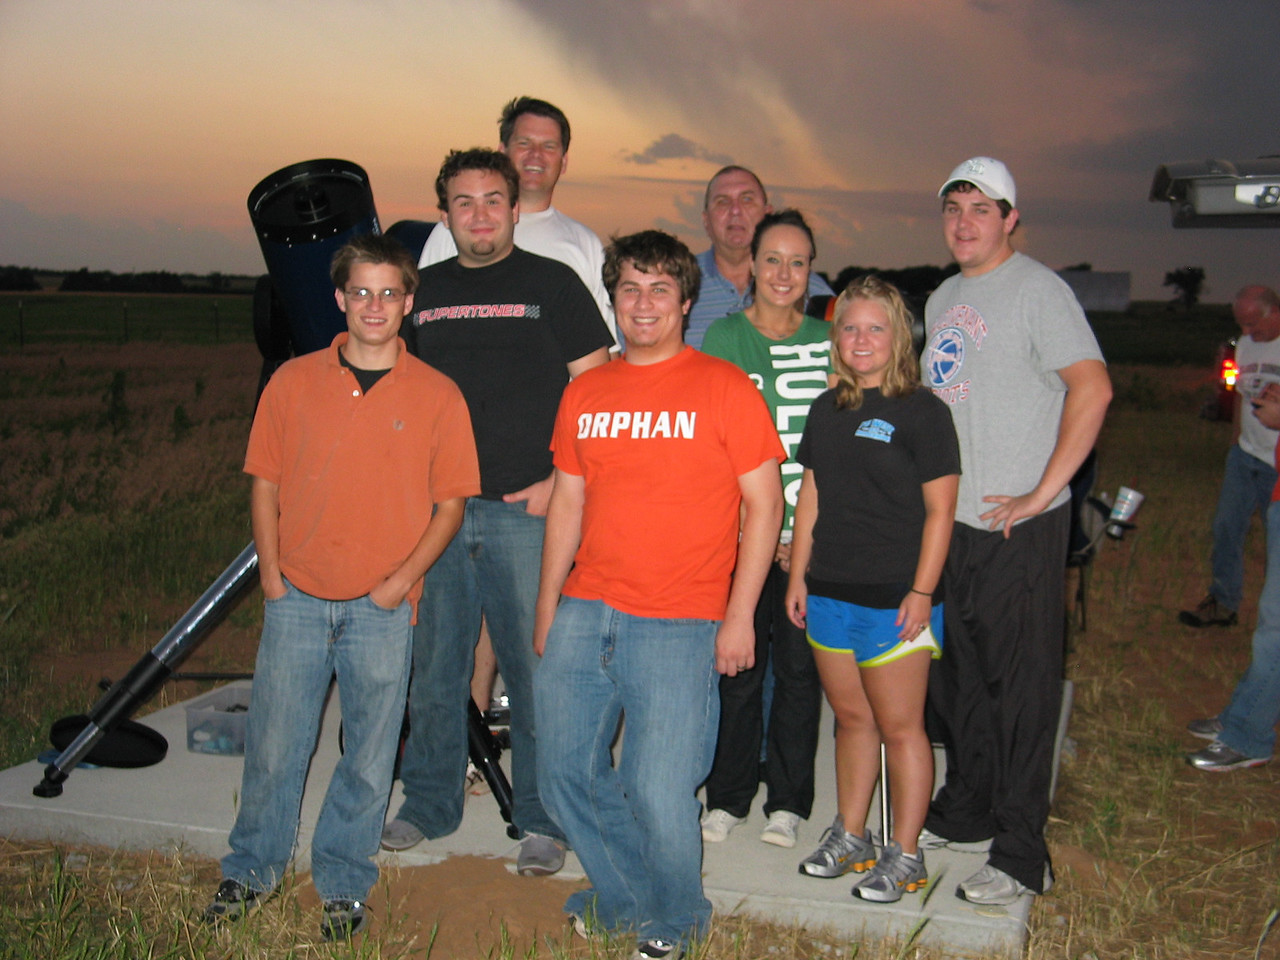 Summer astronomy class field trip out to Cheddar Ranch Observatory - a storm is about to blow in!